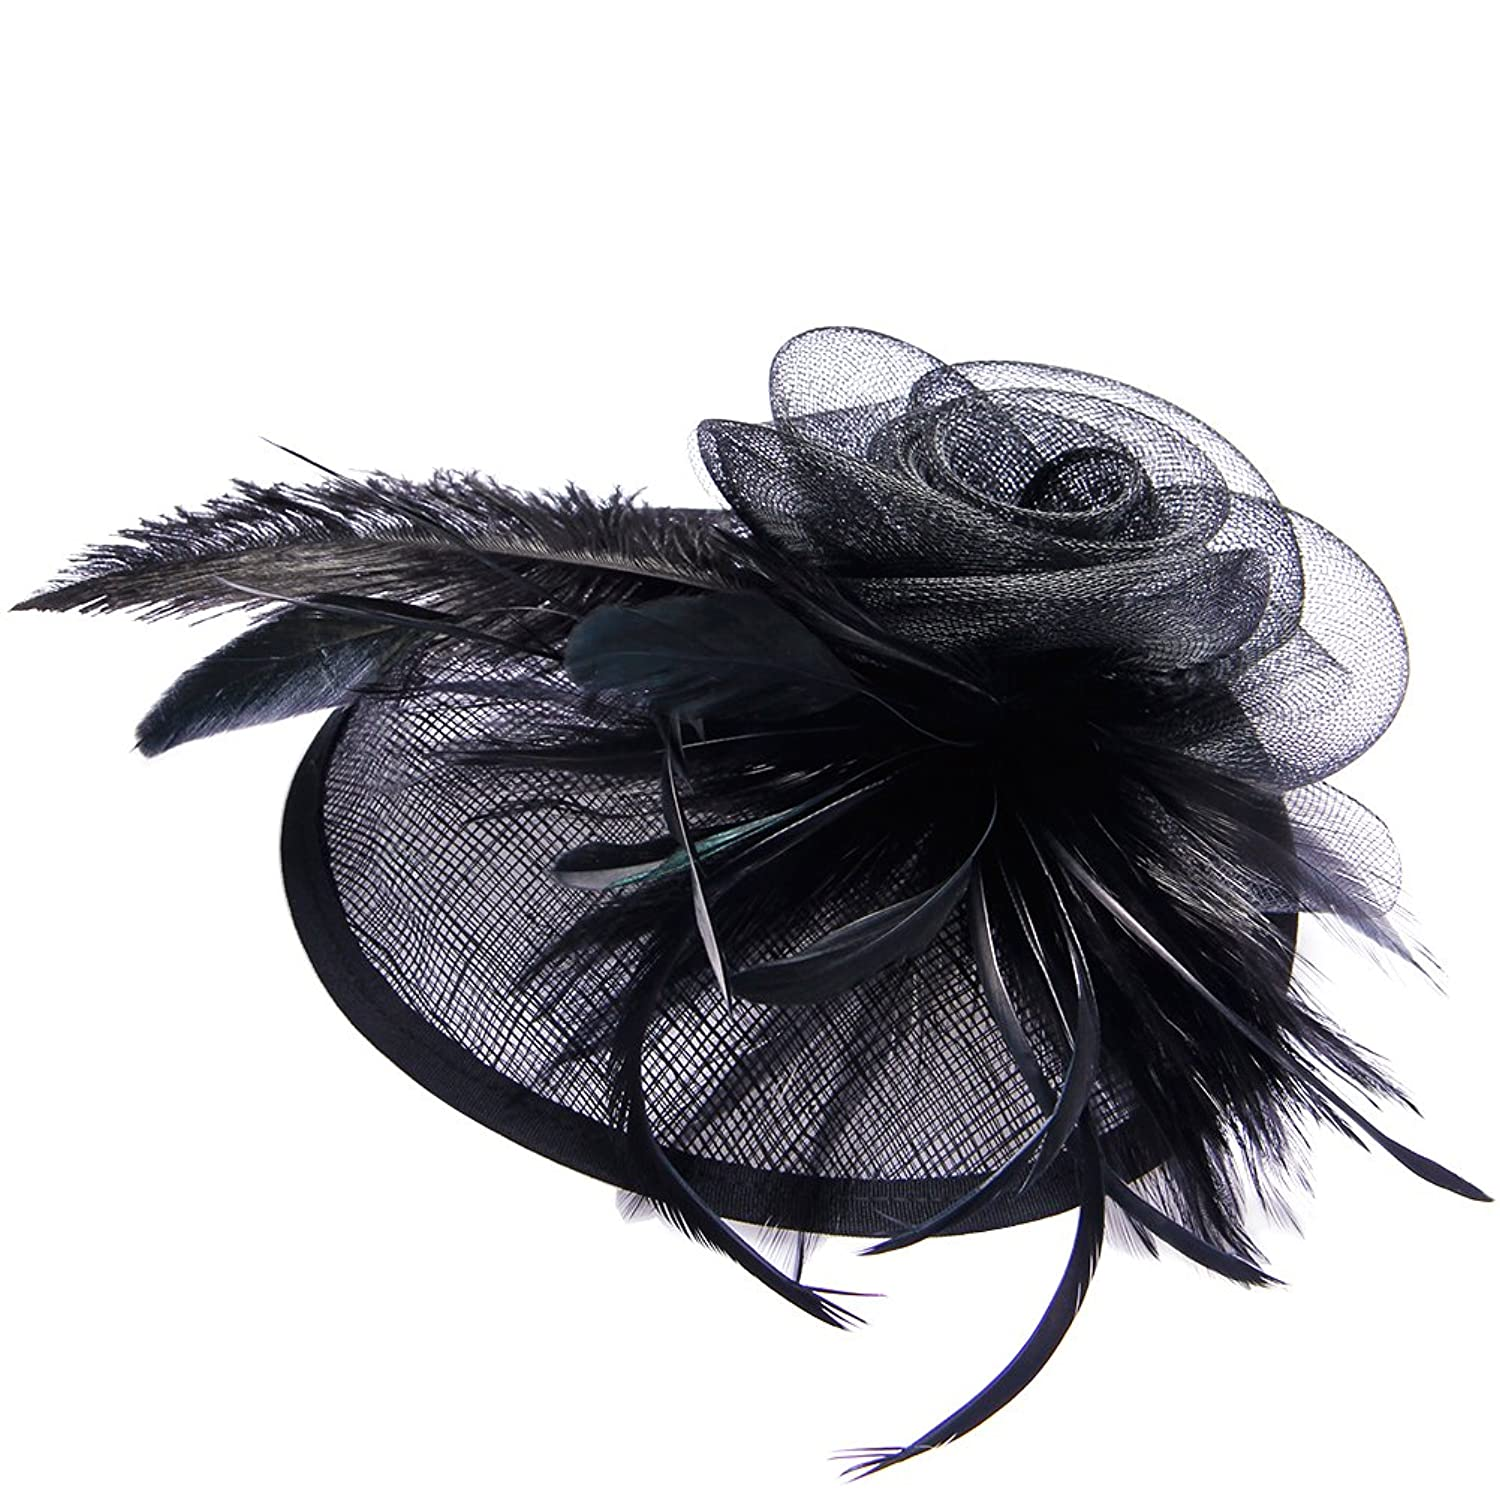 1950s Style Hats for Sale Valdler Womens Feather Mesh Net Sinamay Fascinator Hat with Hair Clip Tea Party Derby $12.99 AT vintagedancer.com